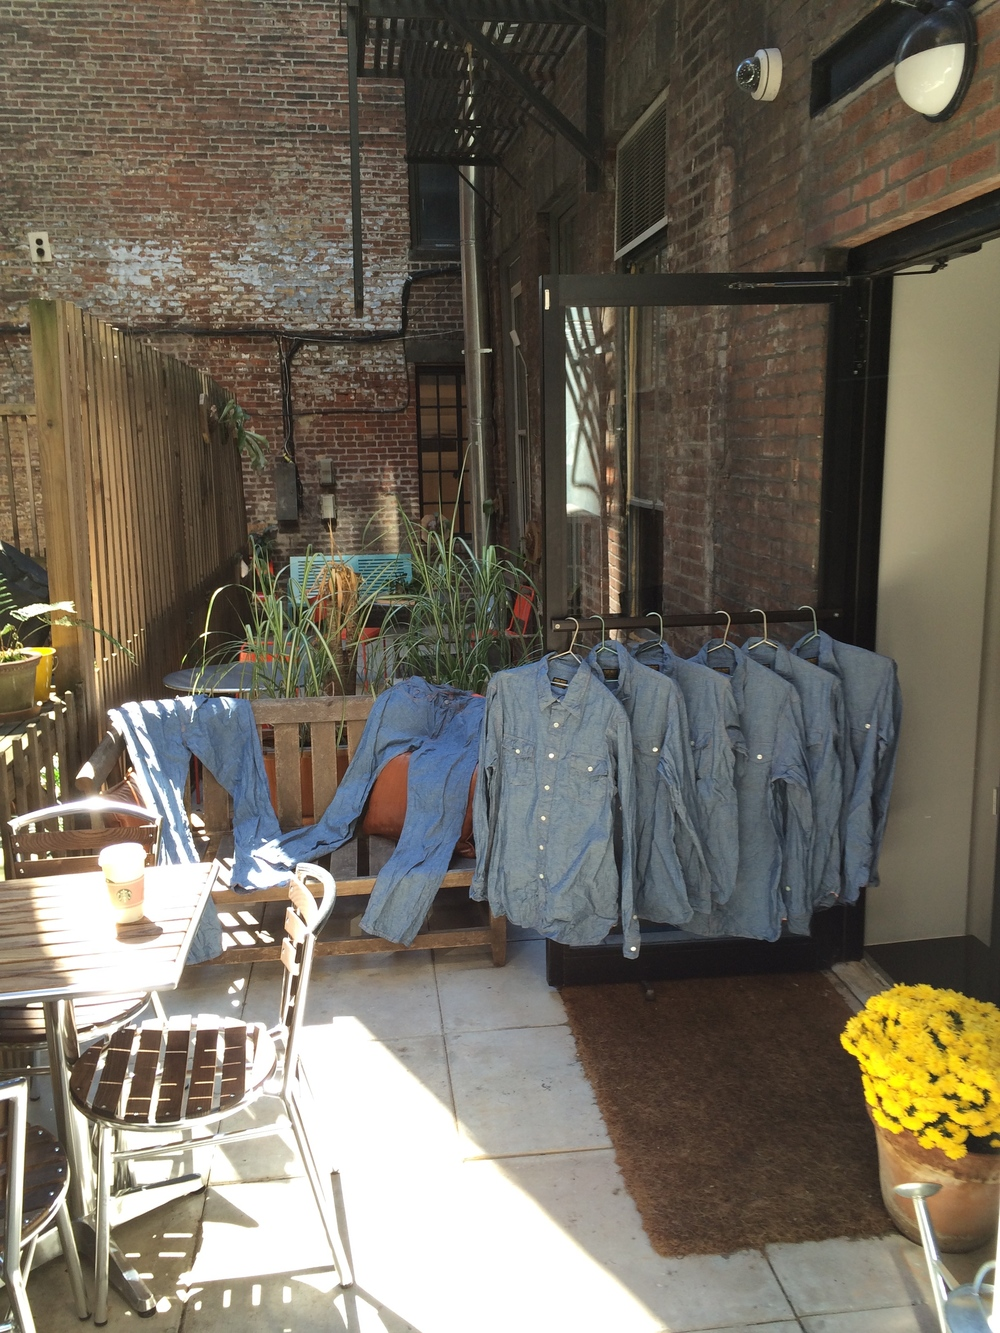 Stop in and hang out in our backyard. You your friends and some chambray shirts and pants